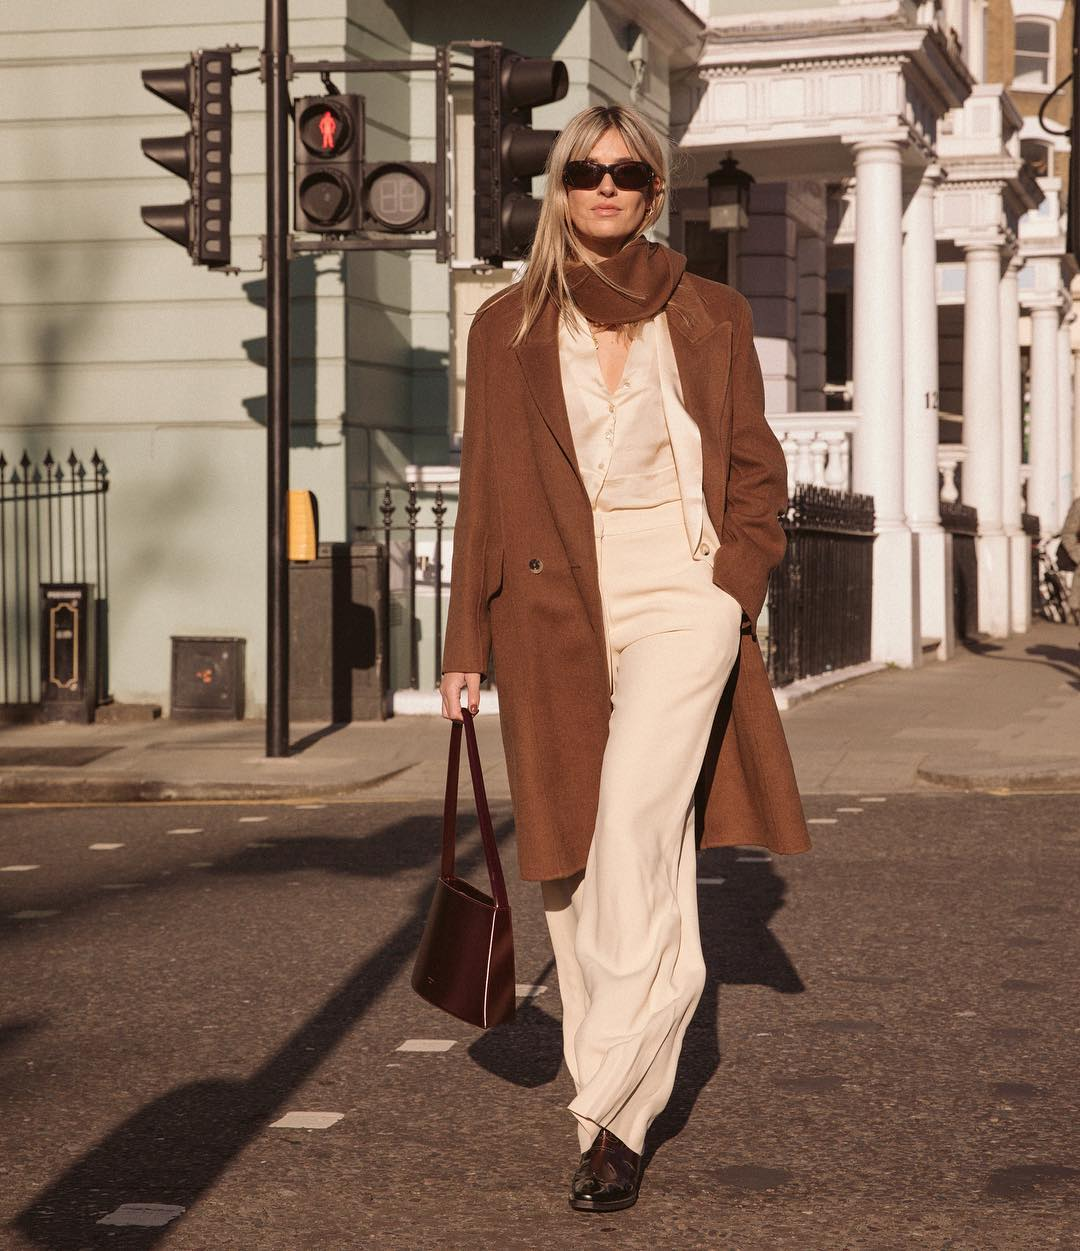 camille-charriere-low-classic-seoul-total-look